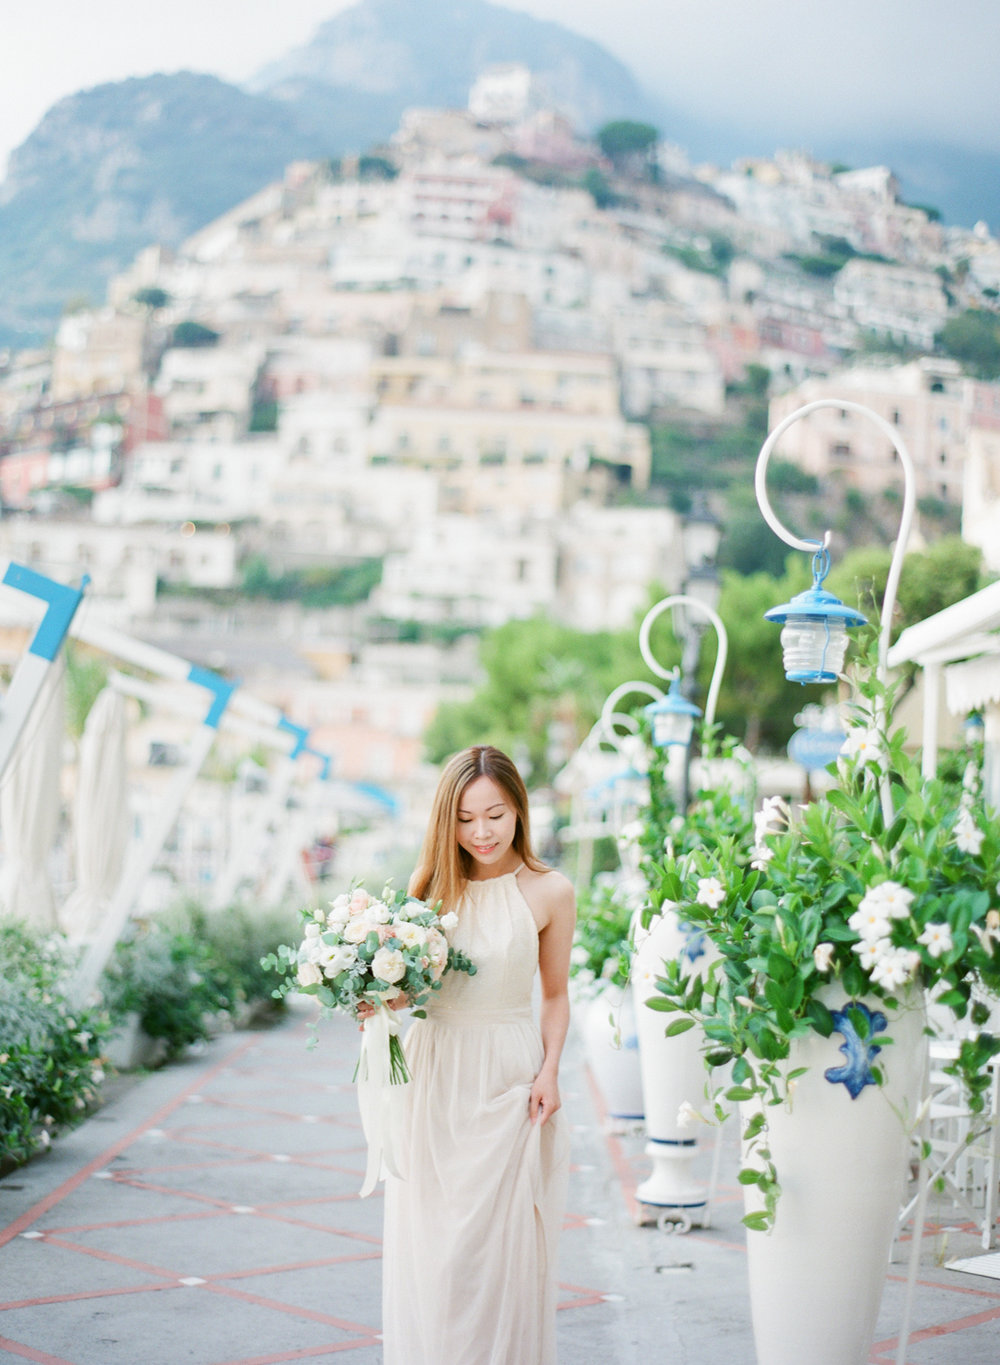 positano wedding amalfi coast wedding photographer positano film wedding photographer 21.JPG